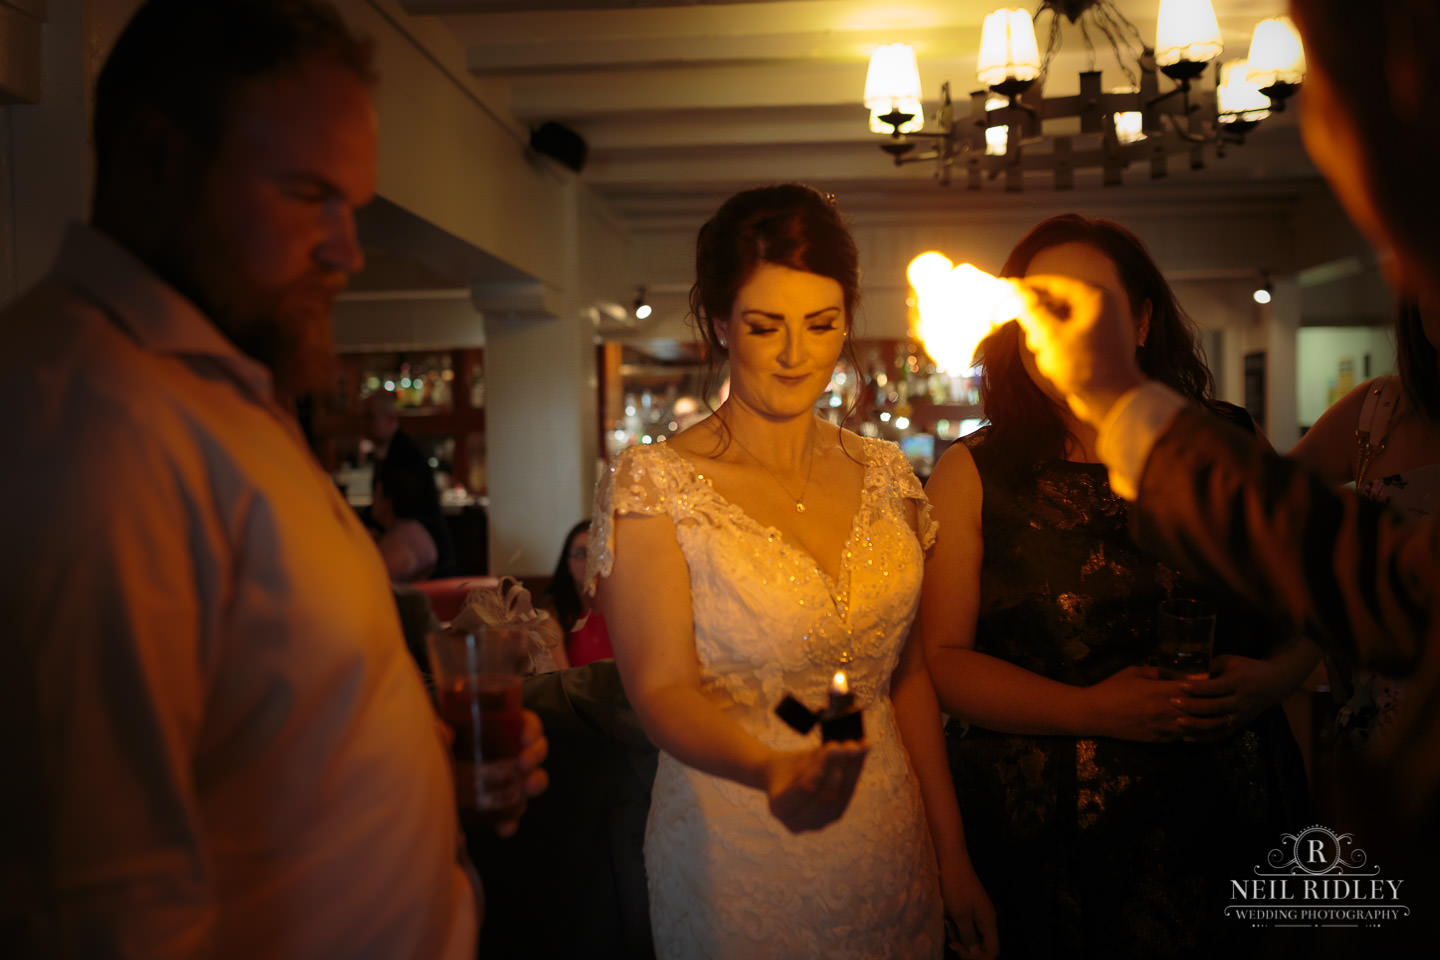 Bride watches magician burn a playing card at The Mill at Conder Green